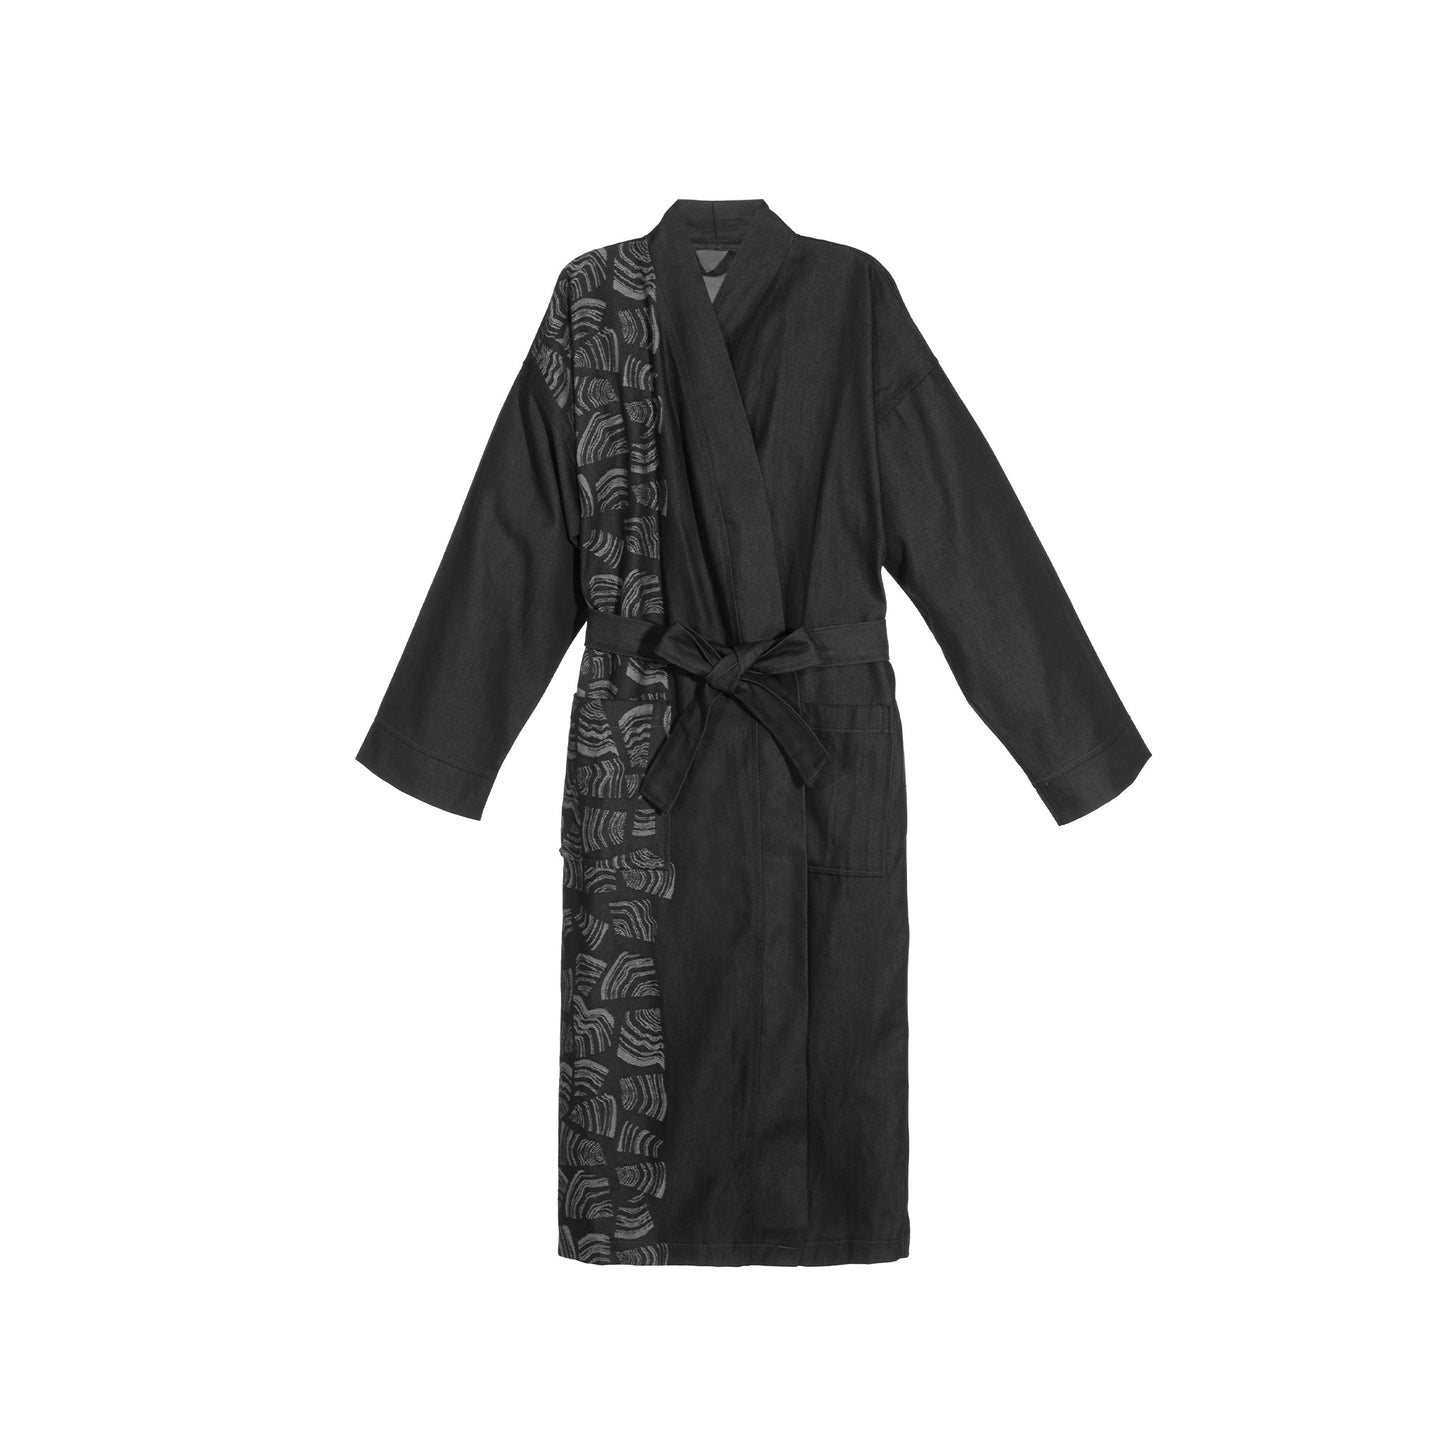 Rento Pino Sauna Bathrobe Black S/M Sauna Robes & Dressing Gowns Finnmark Sauna